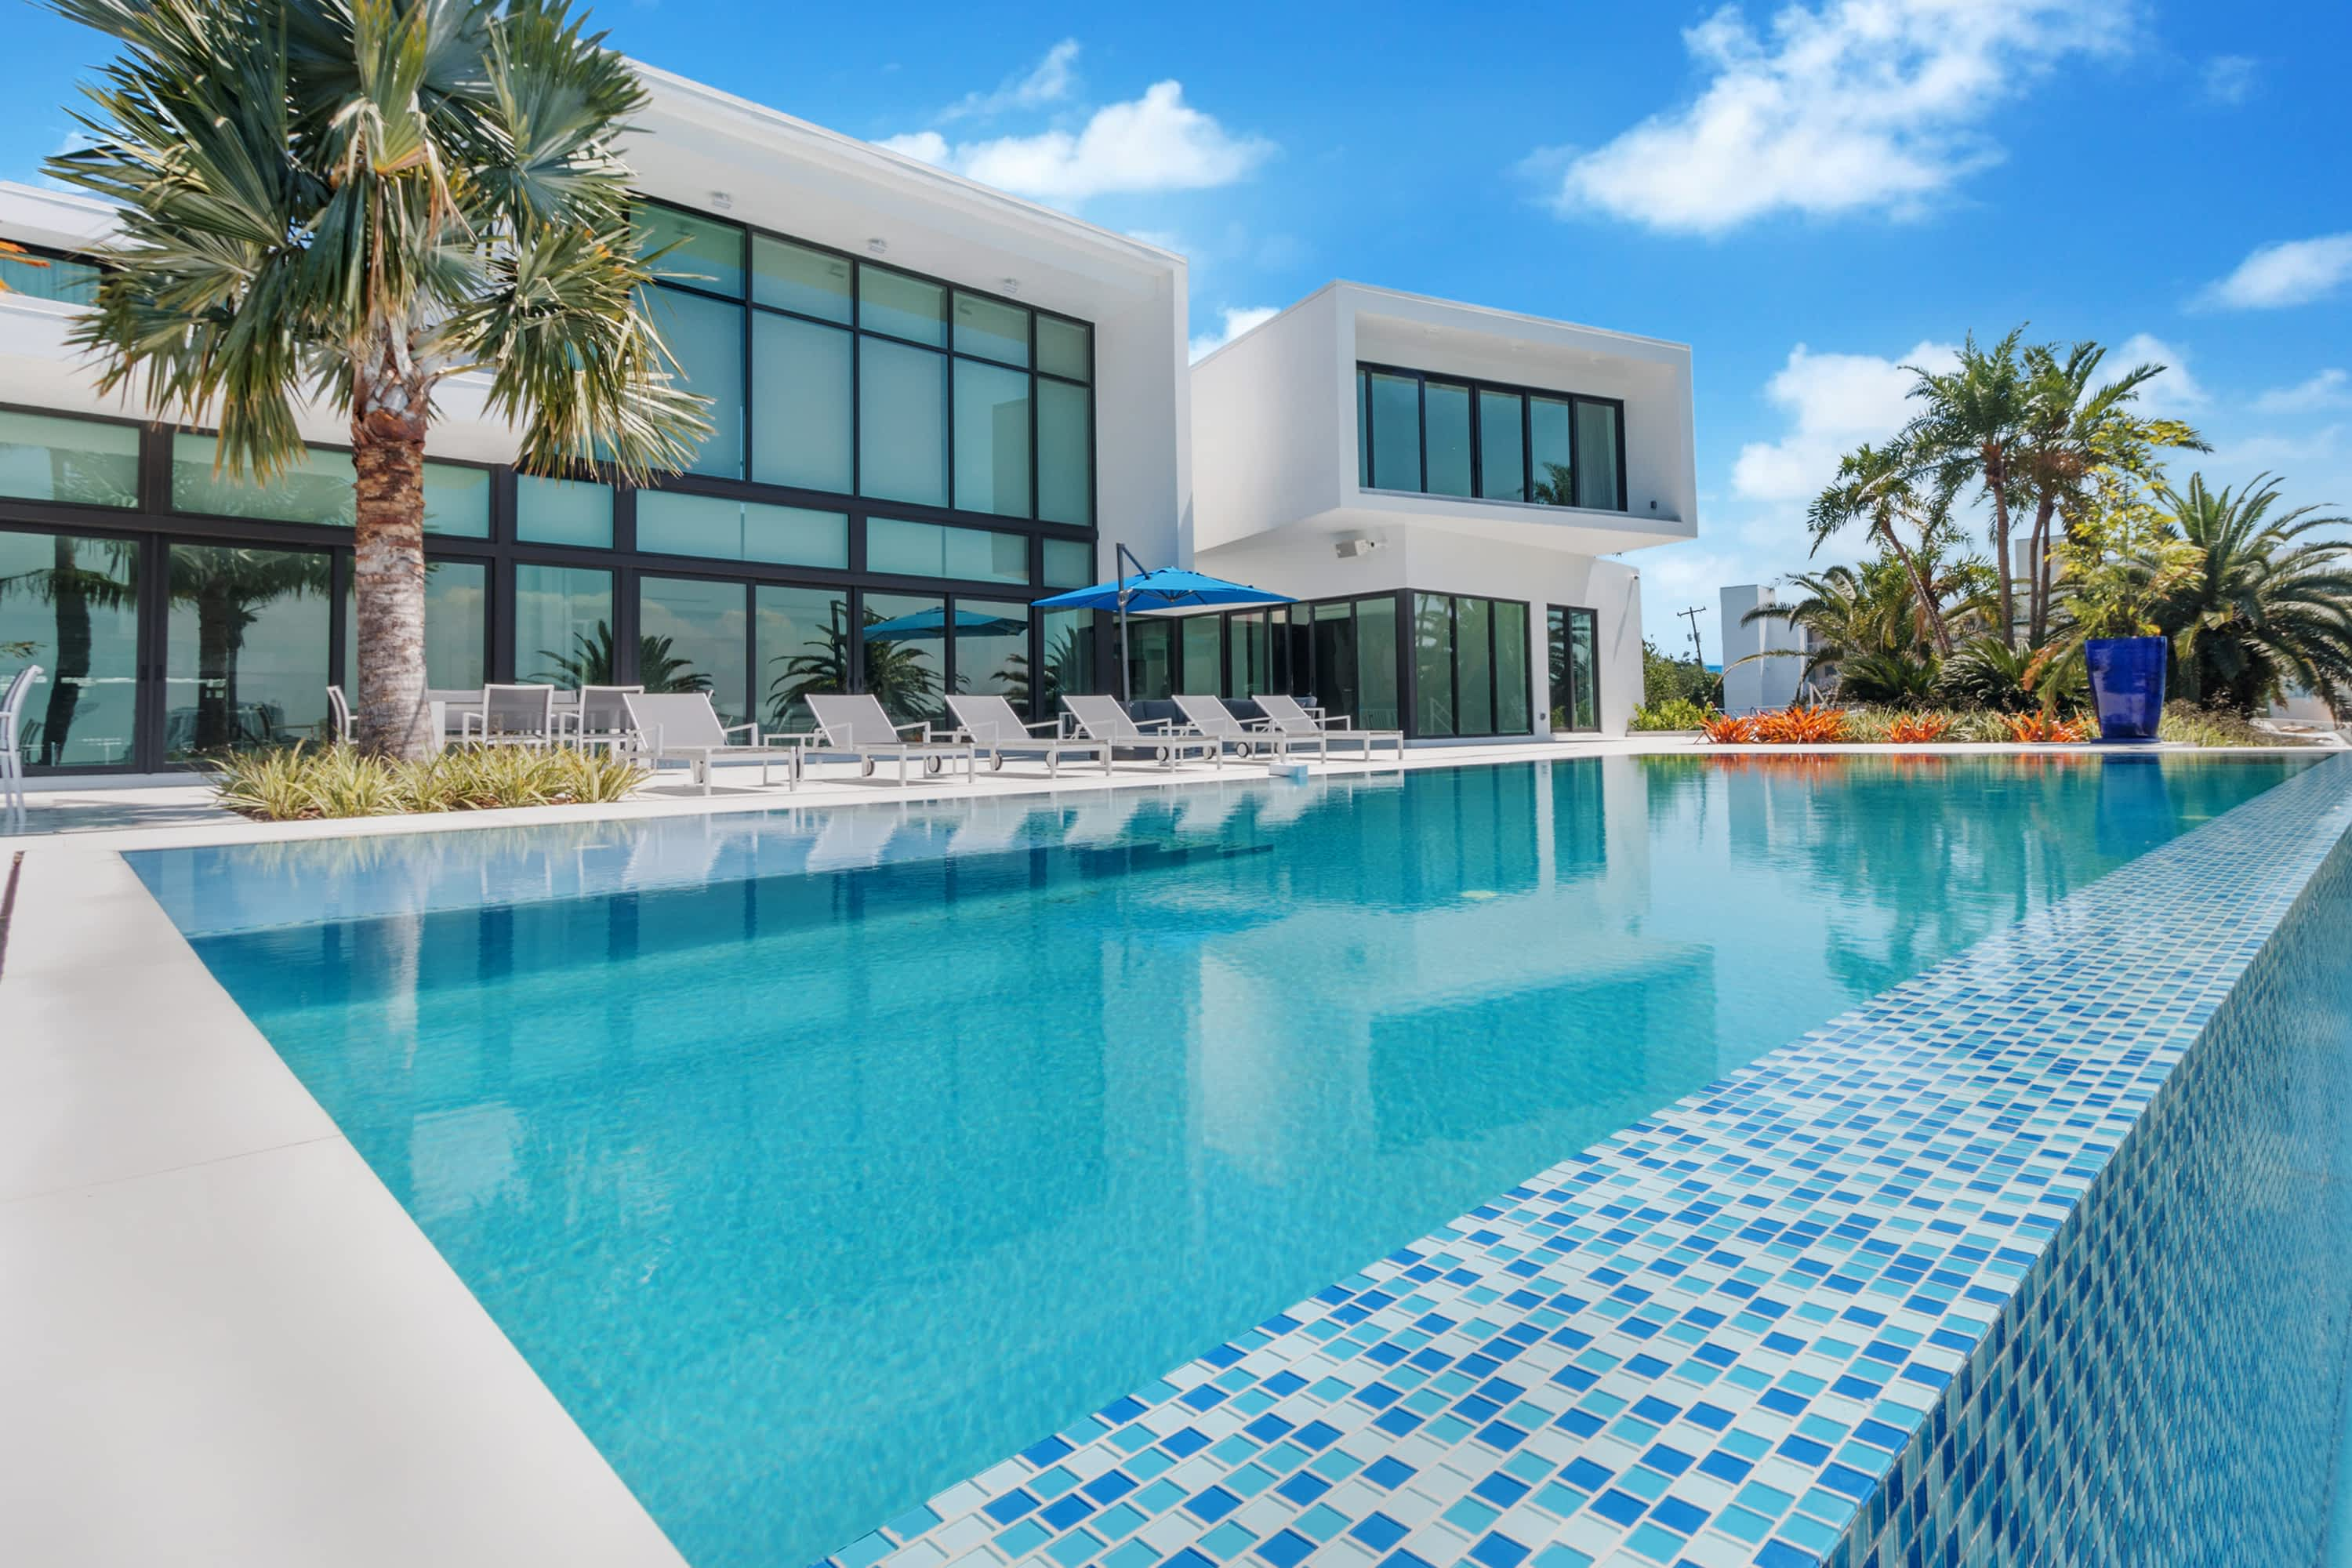 1070 S SHORE DR - pool